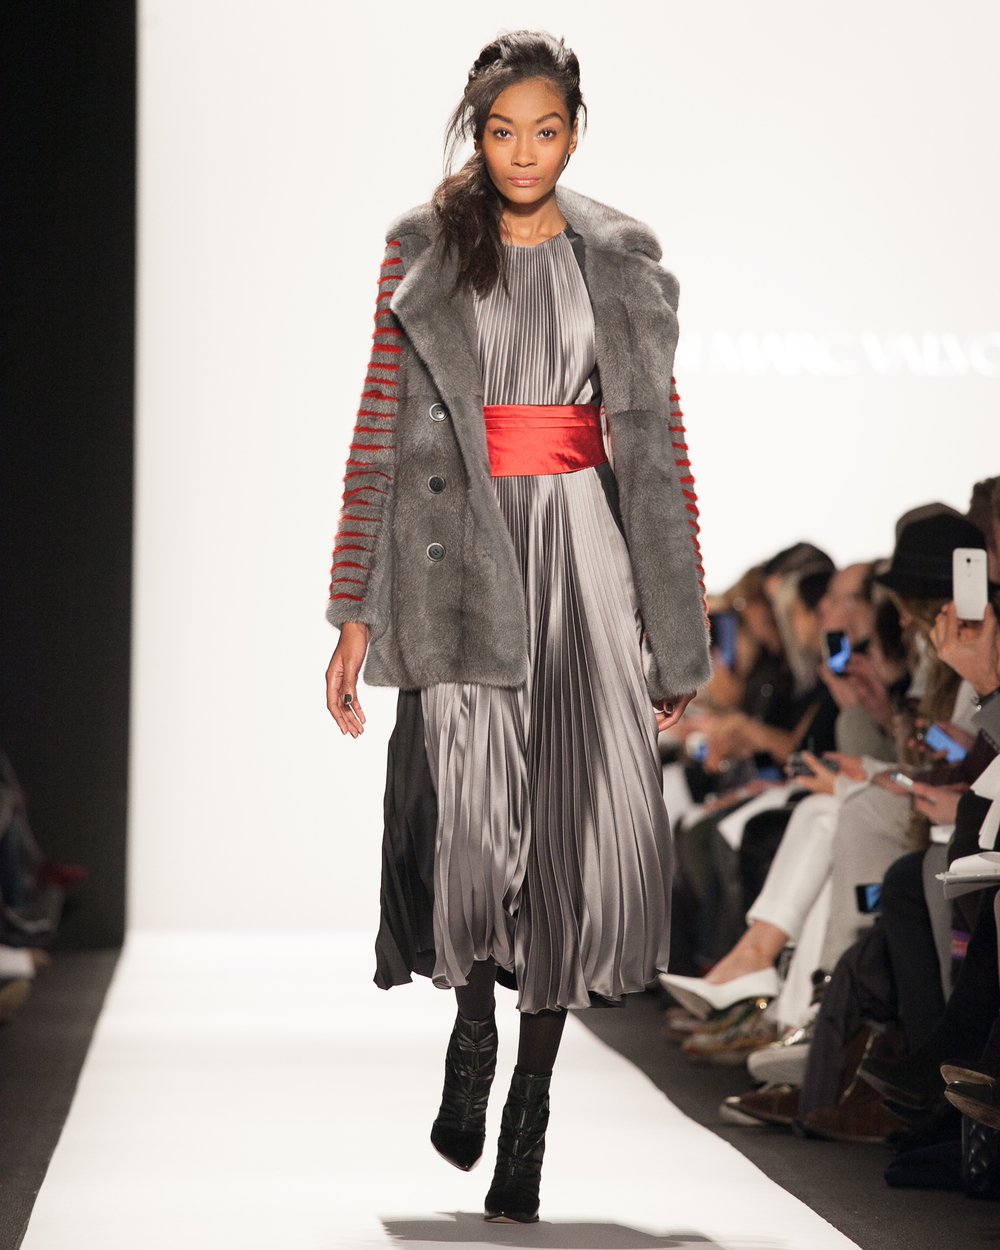 012-Marc-Carmen-Valvo-new-york-fashion-week-fall-winter-2015--Shana-Schnur-Photography-012.jpg